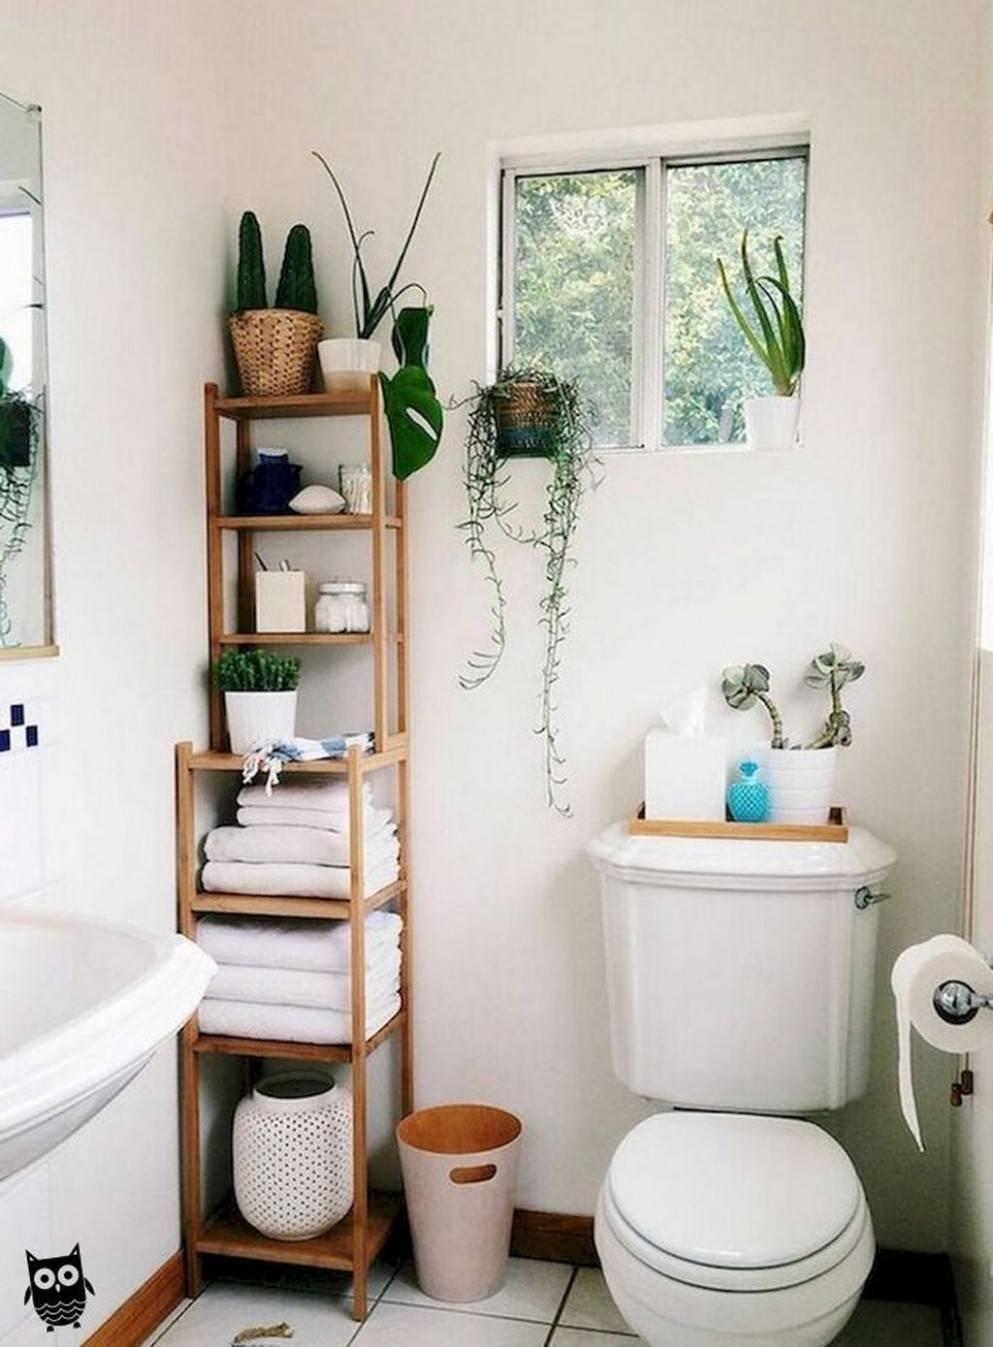 8 Fascinating Simple Apartment Bathroom Decor Ideas in 8  - Apartment Bathroom Decorating Ideas On A Budget